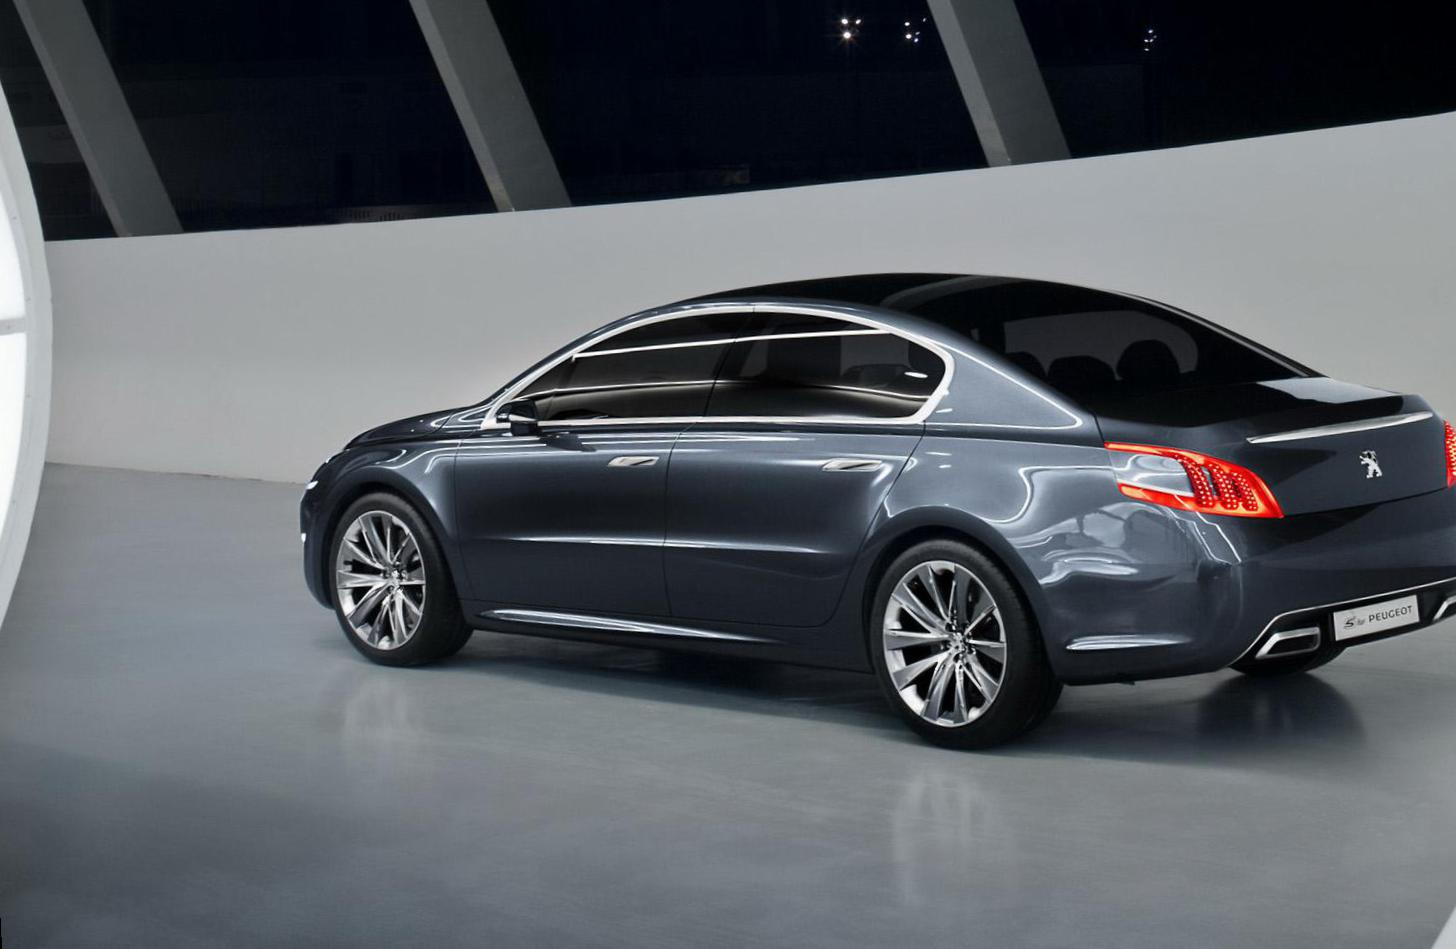 Peugeot 508 Photos and Specs. Photo: 508 Peugeot usa and 25 perfect